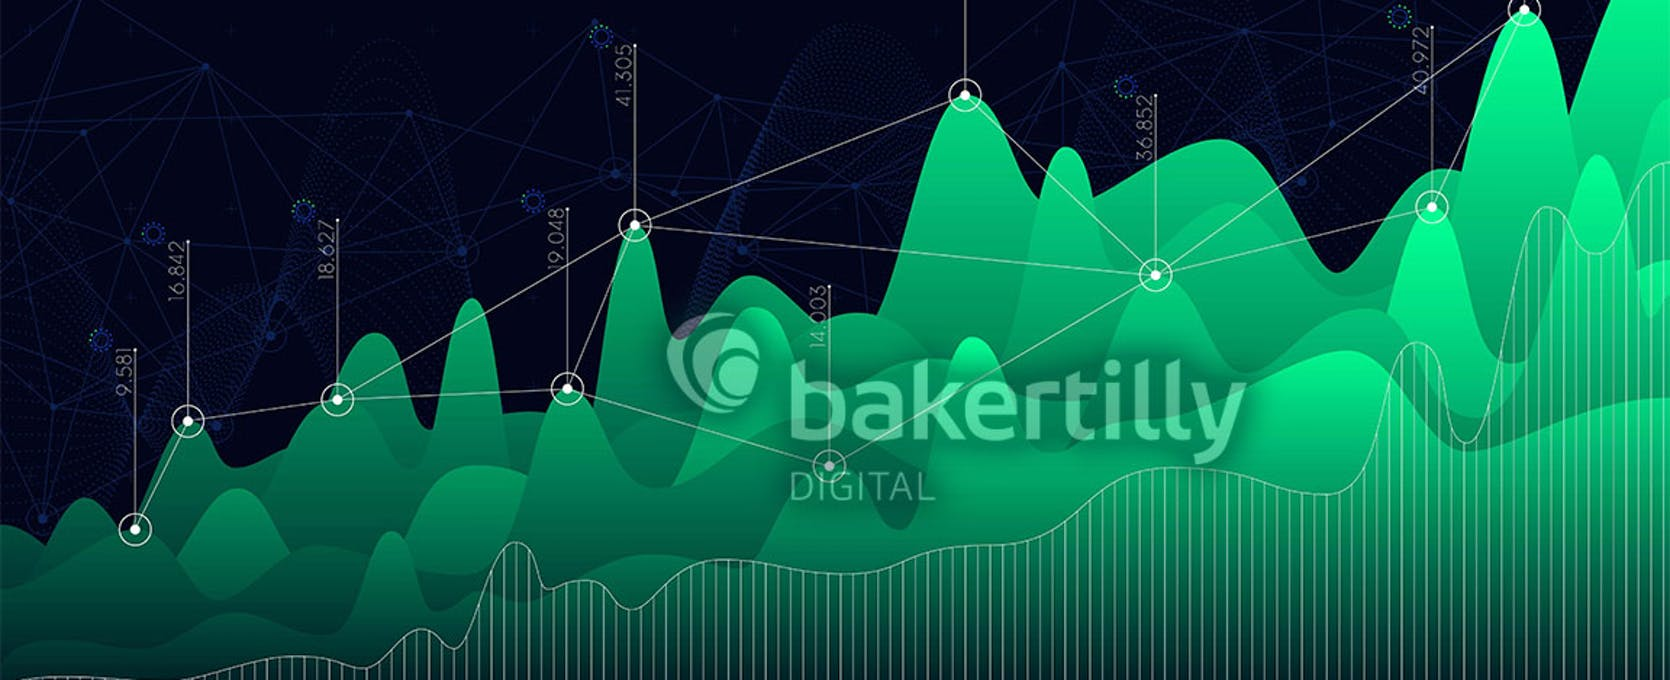 Business intelligence system reports assist management with decision making